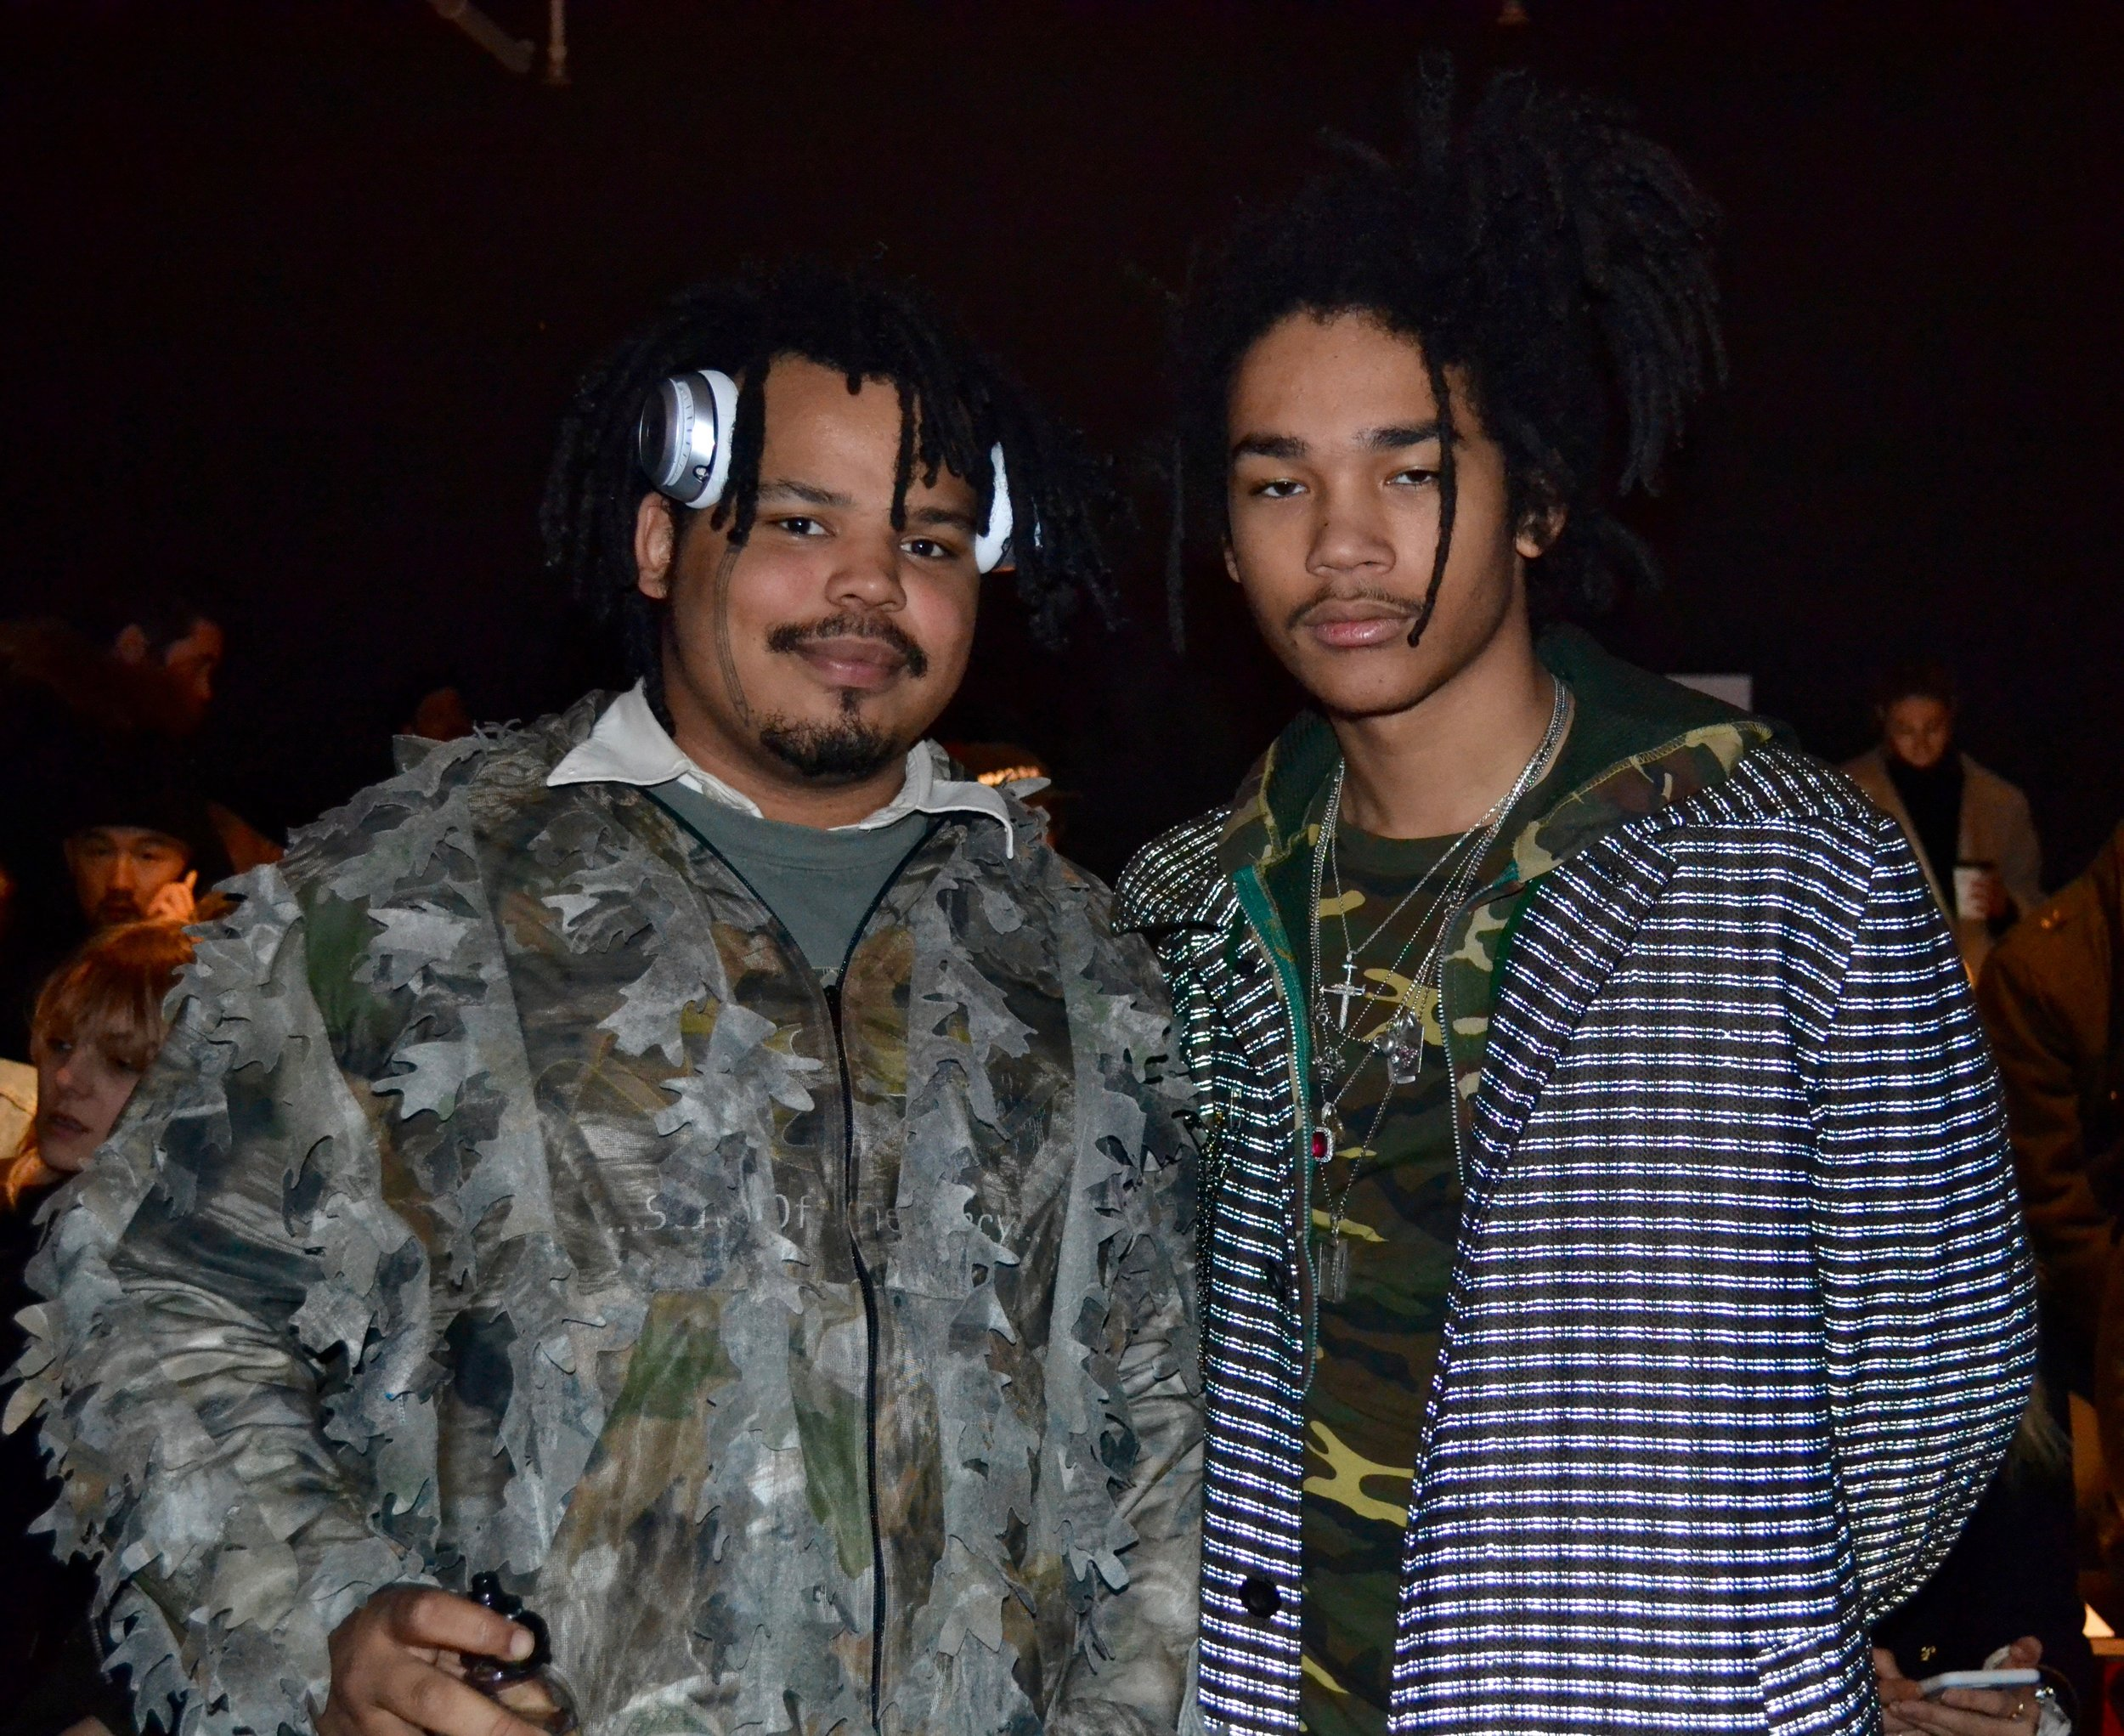 Front row: Kerwin Frost and Luka Sabbat.